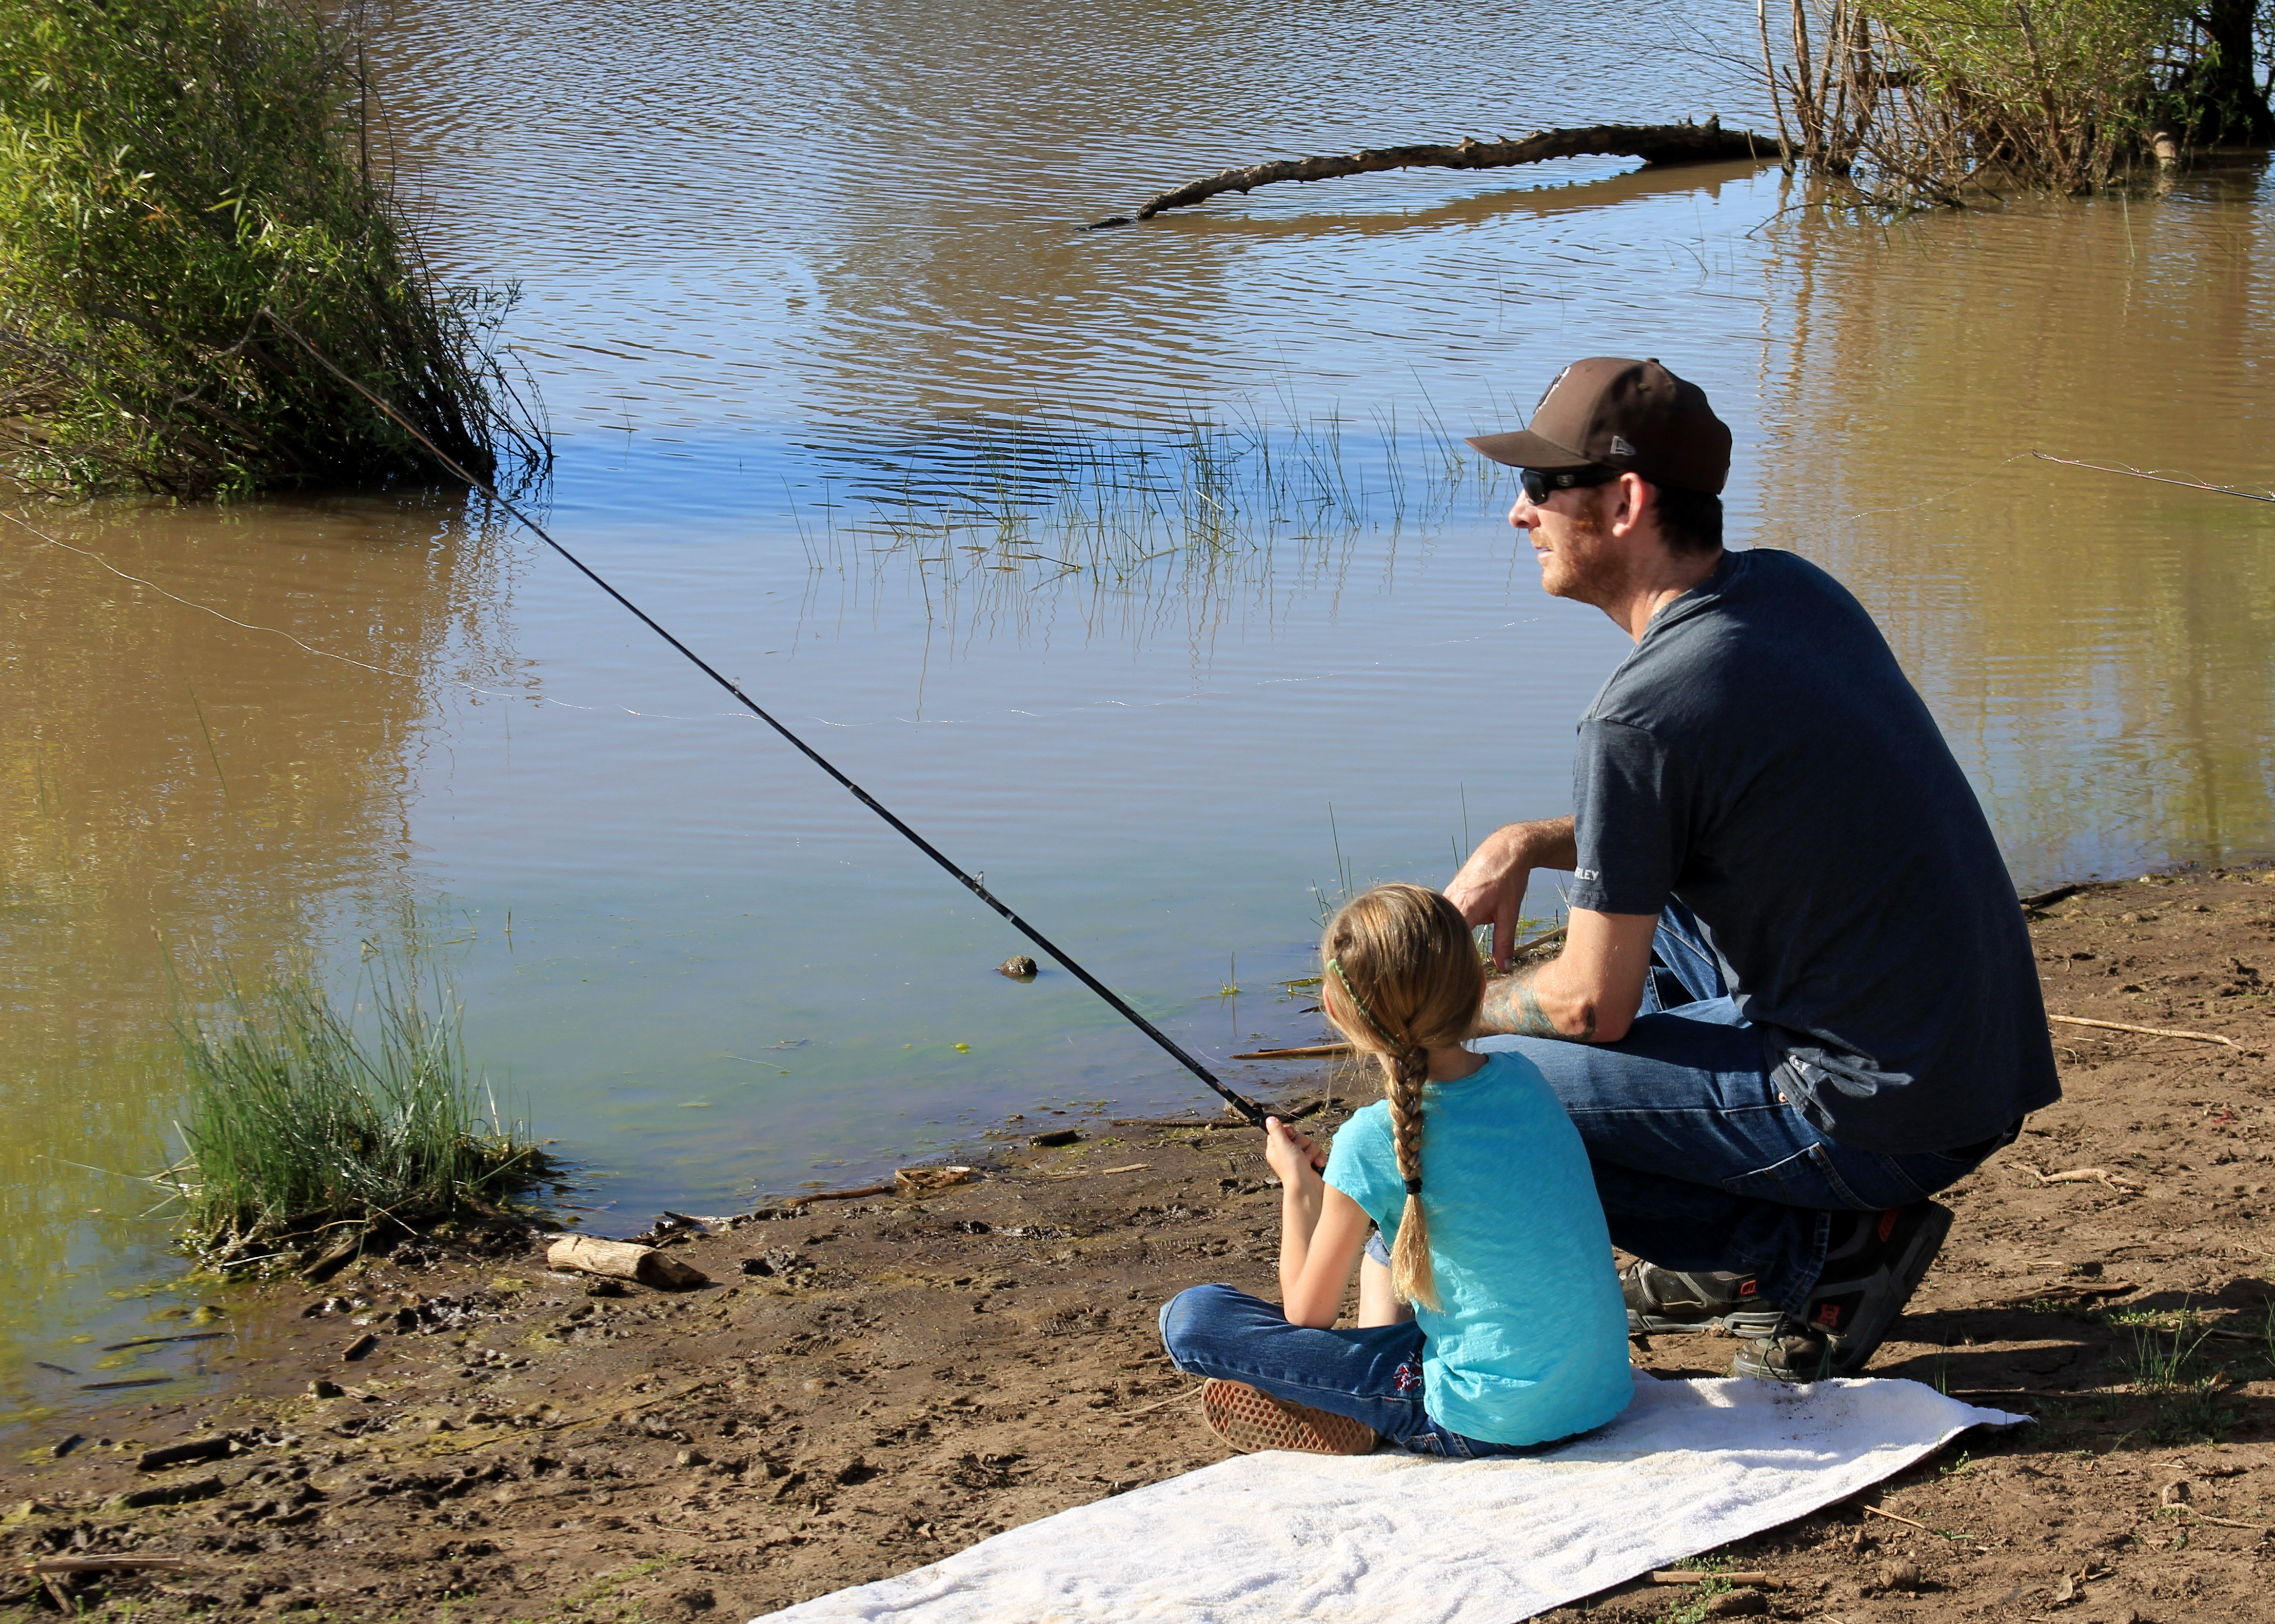 Fishing license reform bill earns state senate support for California fishing regulations